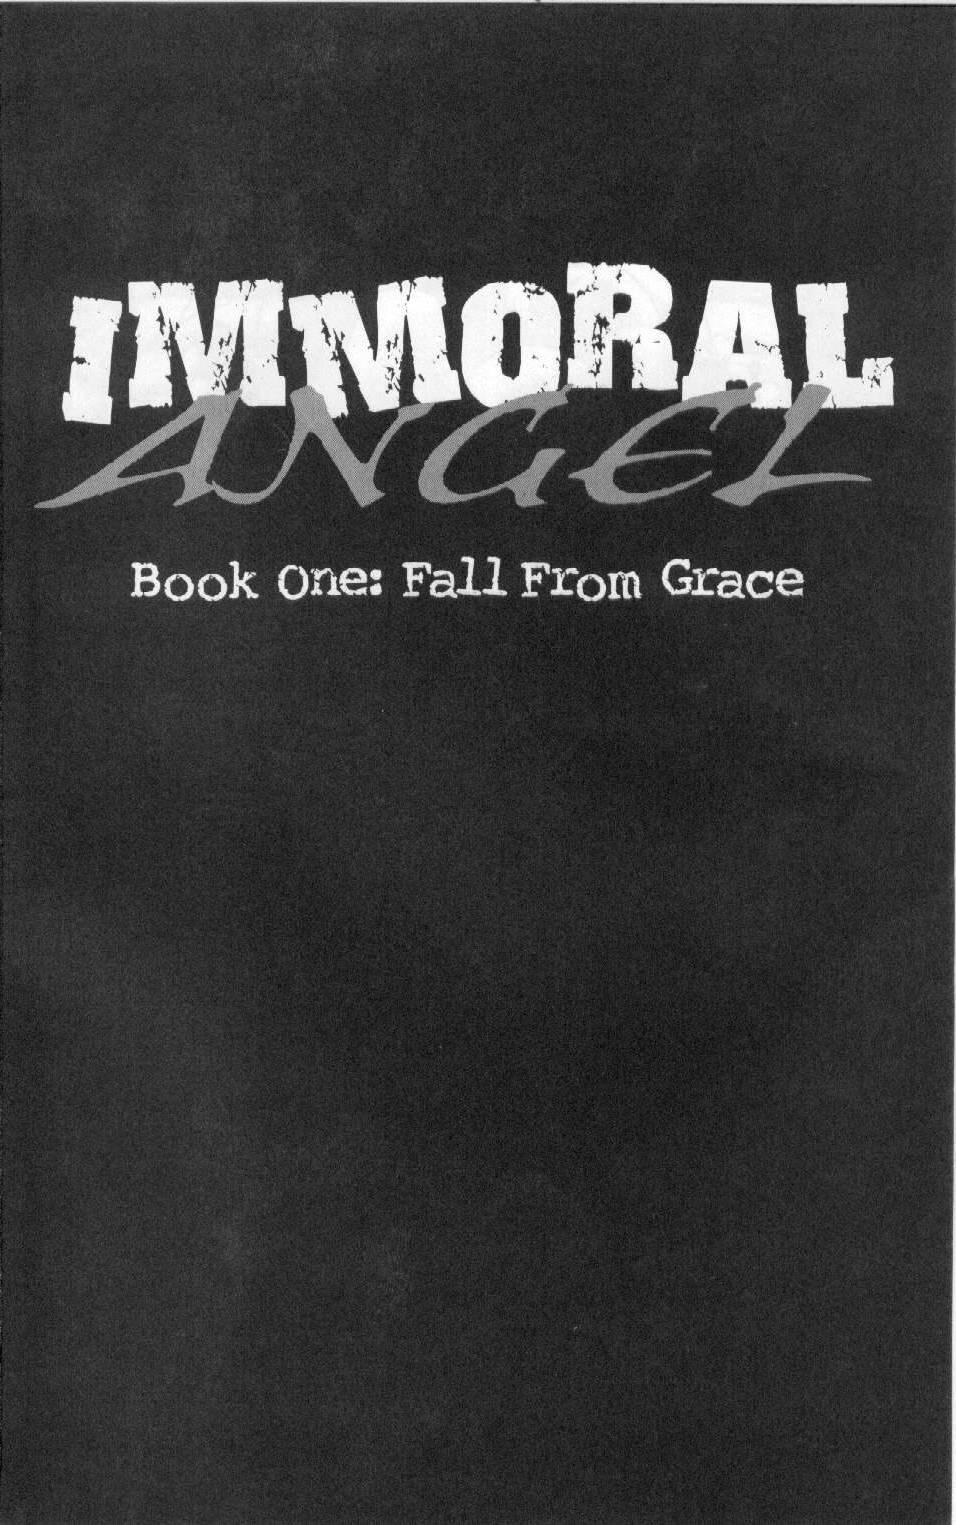 Immoral Angel Volume 1: Fall From Grace 4